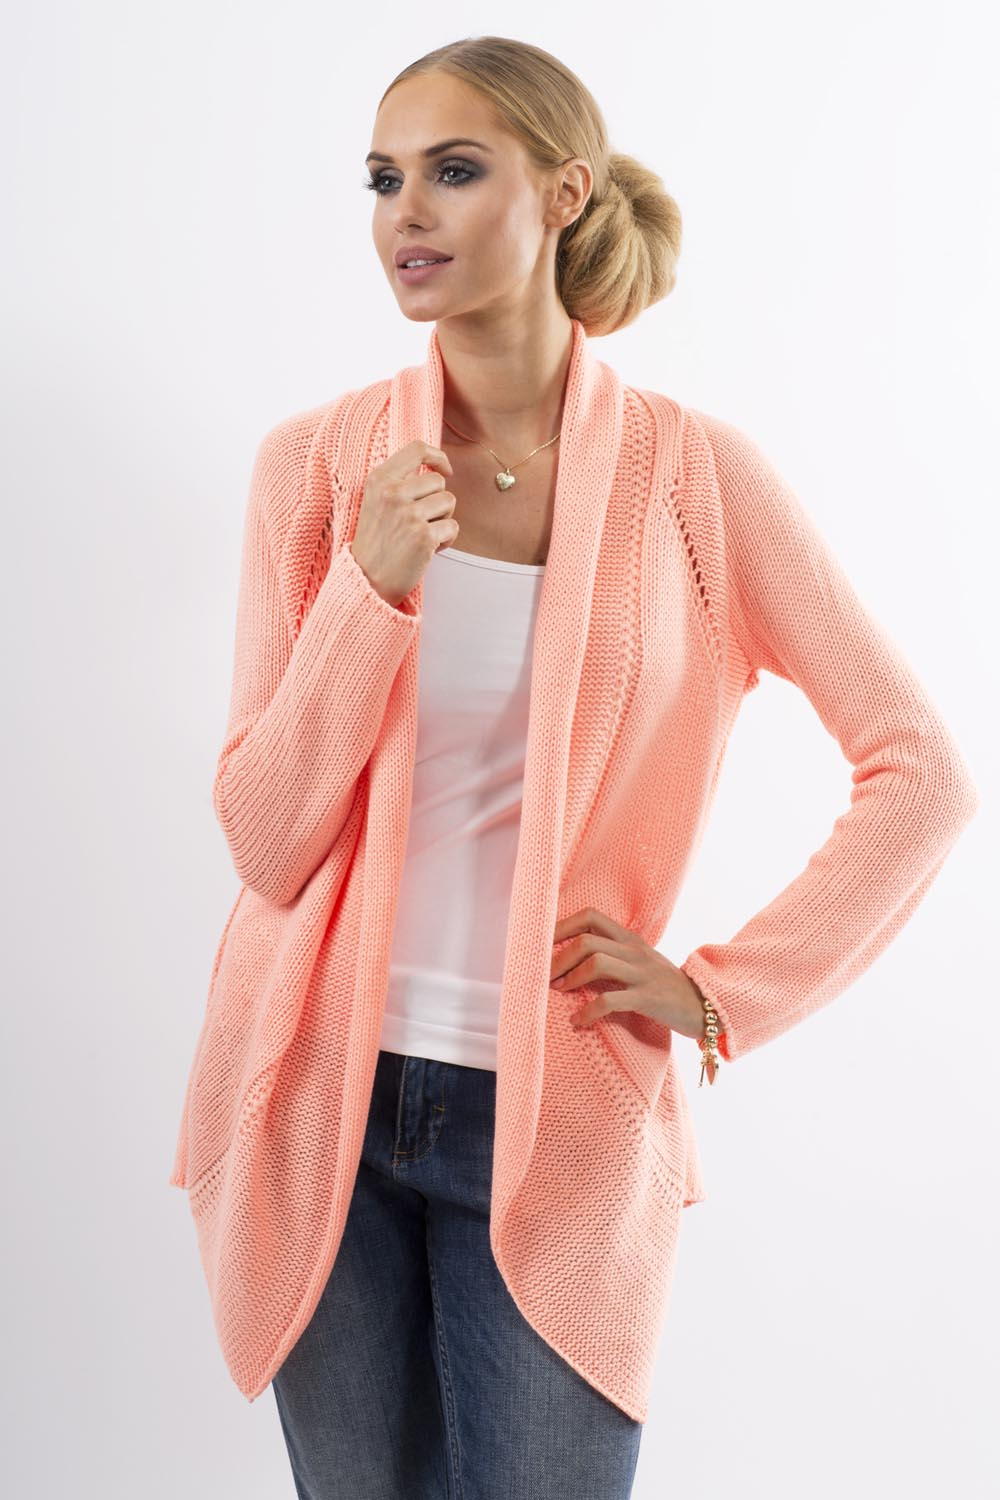 Knitting Pattern Cardigan Shawl Collar : Apricot Shawl Collar Ladies Cardigan with Eyelet Knit Pattern